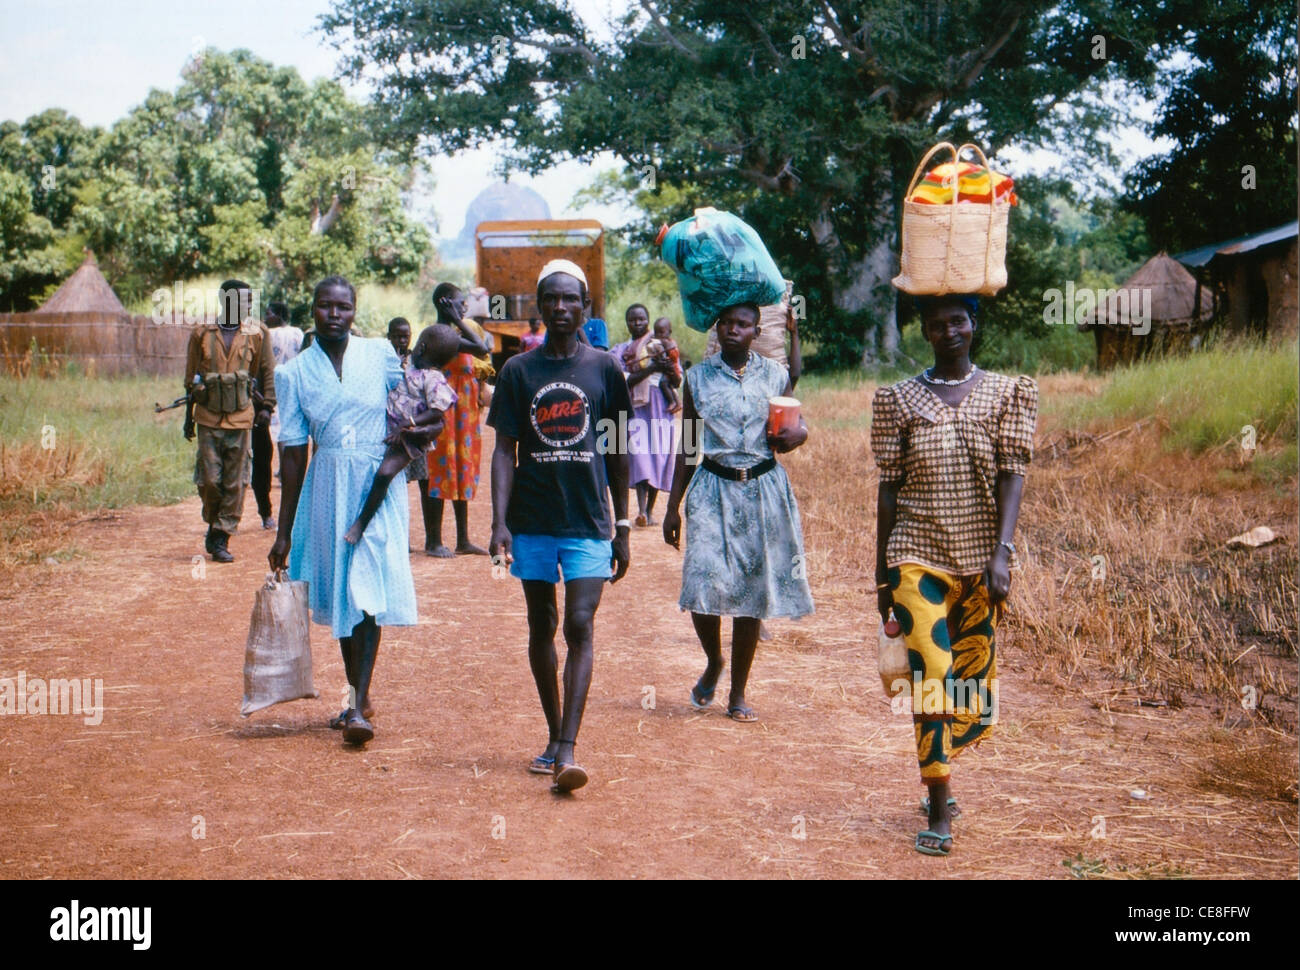 Villagers in Southern Sudan carrying items back from a market - Stock Image